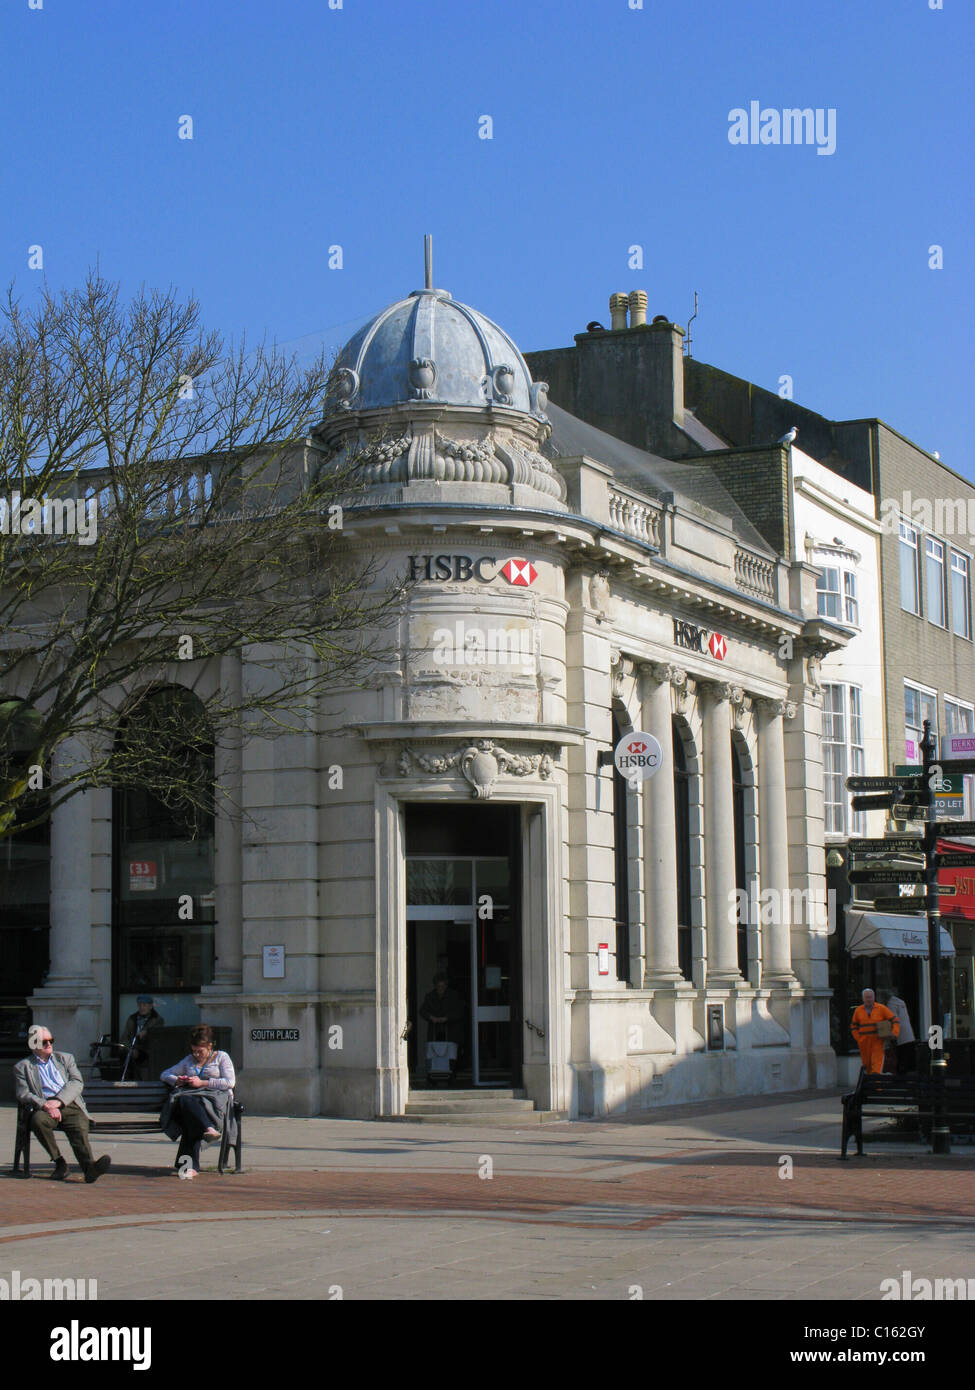 HSBC bank Worthing West Sussex - Stock Image